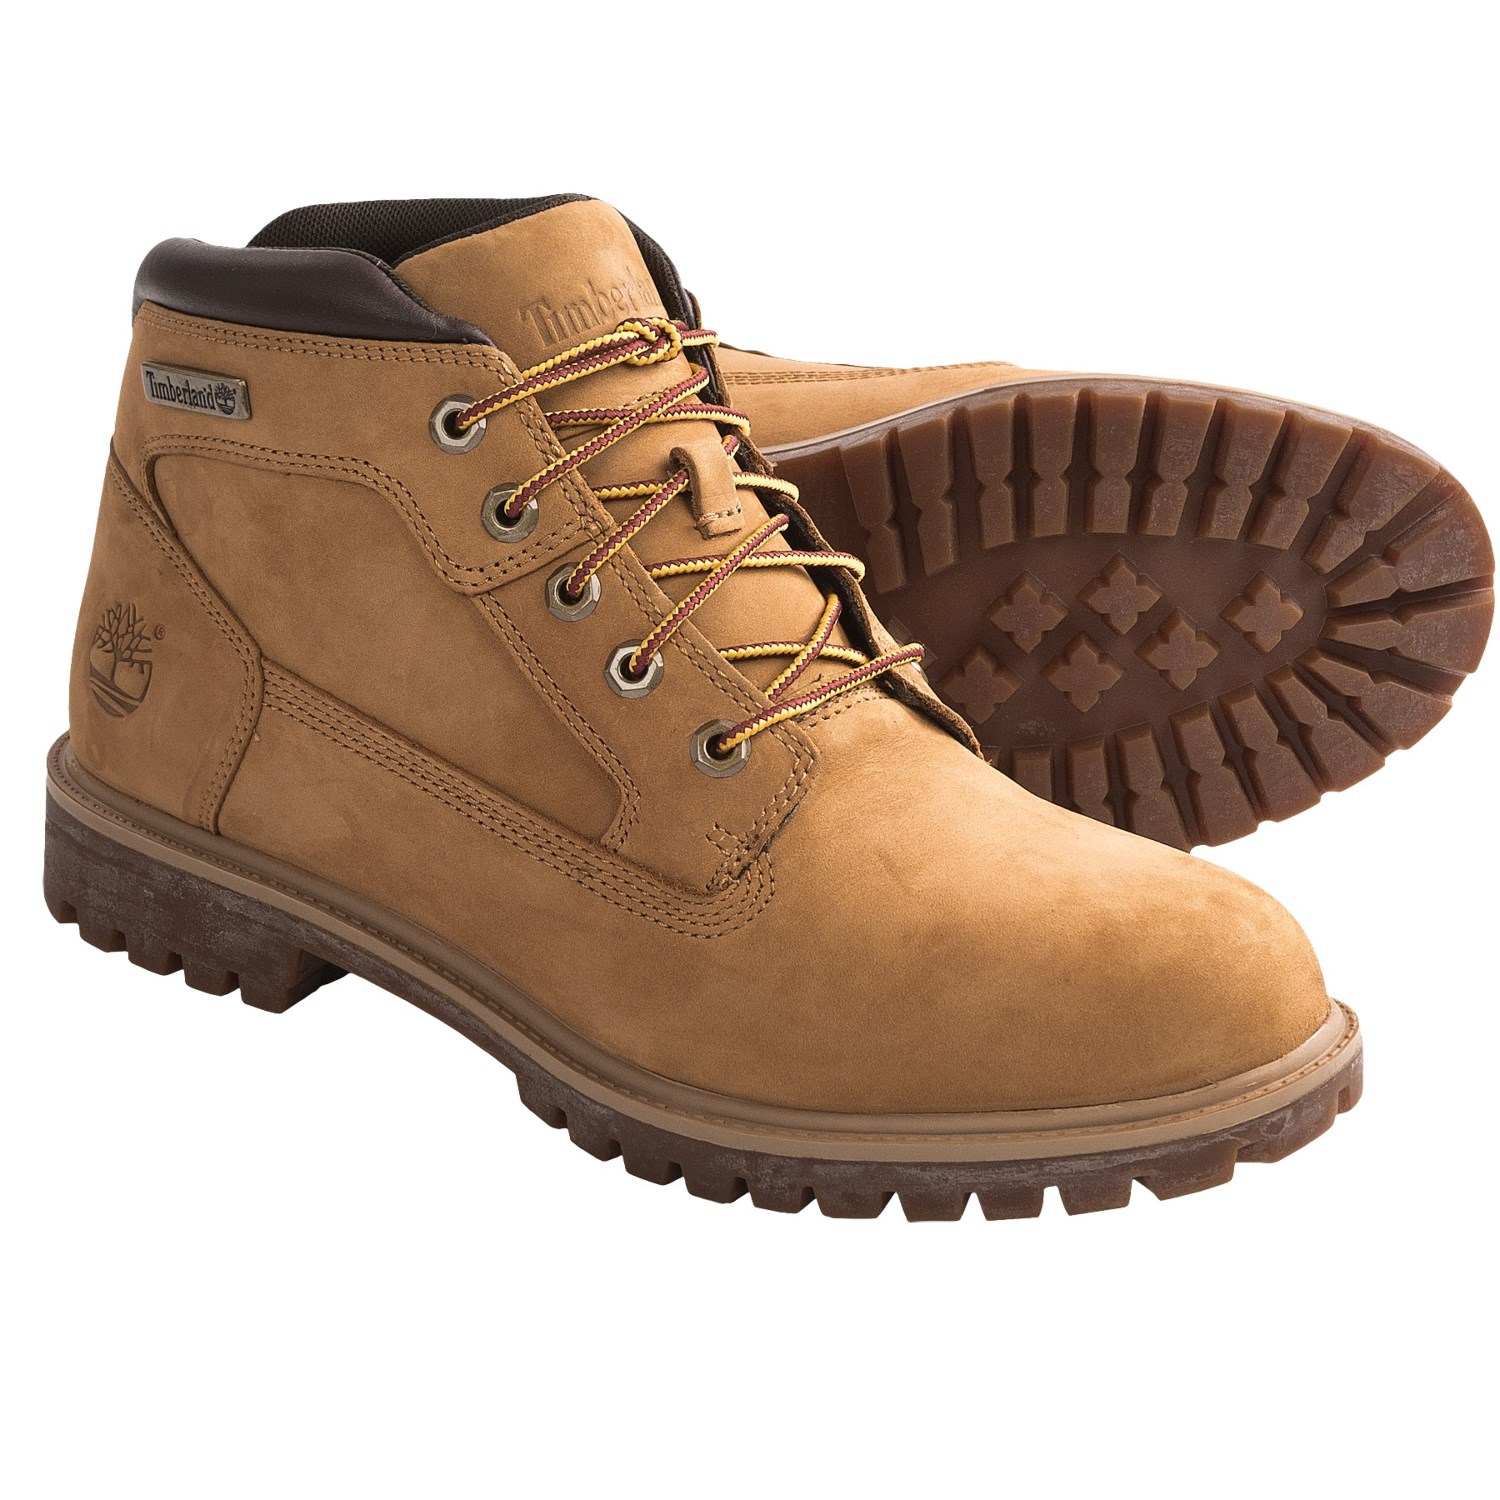 timberland campsite mens chukka boot ,cheap timberland boots for ...